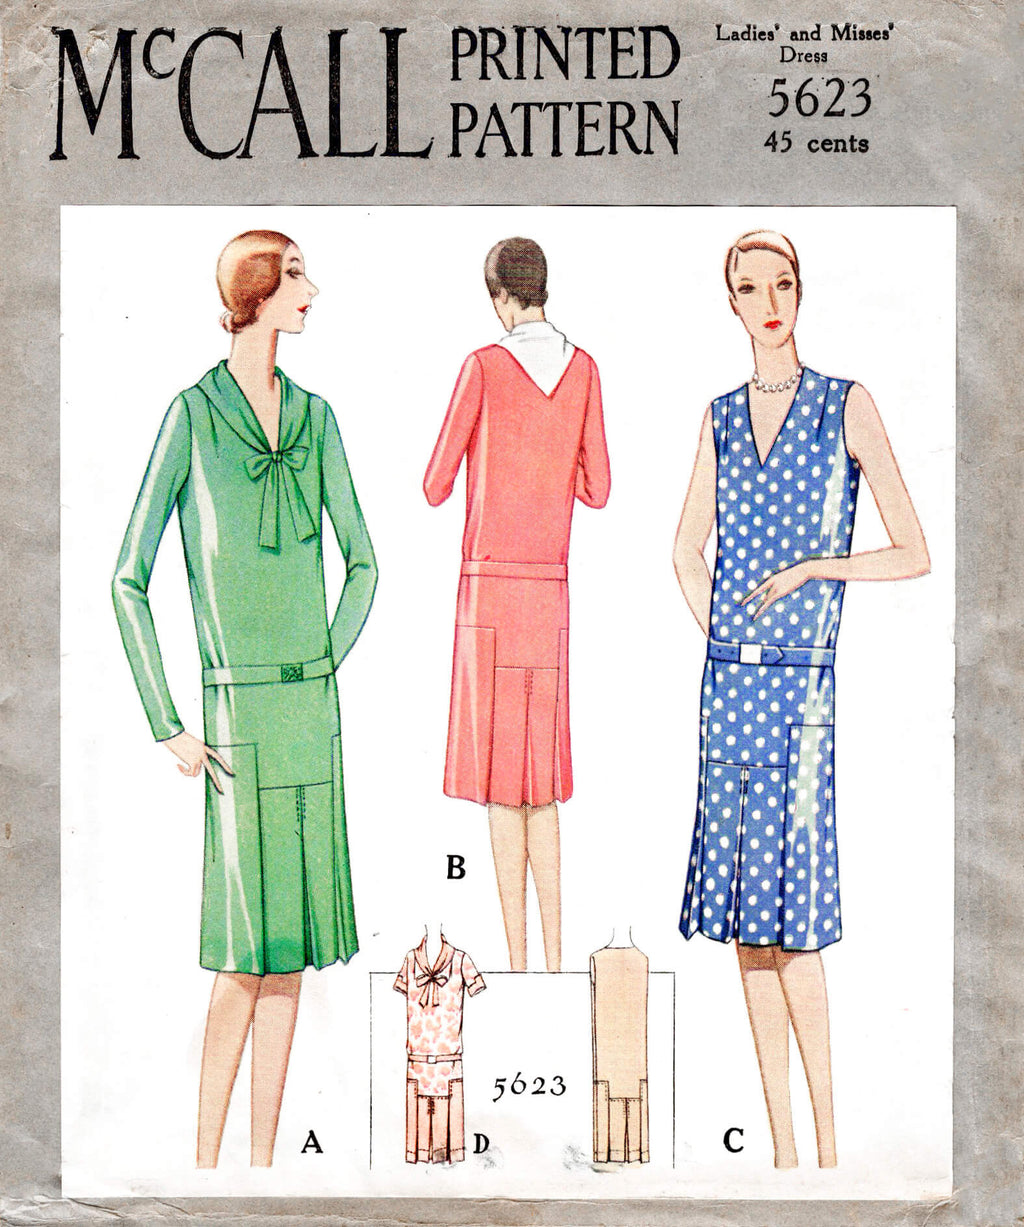 McCall 5623 1920s 1928 flapper era casual day dress drop waist style tie collar vintage sewing pattern reproduction